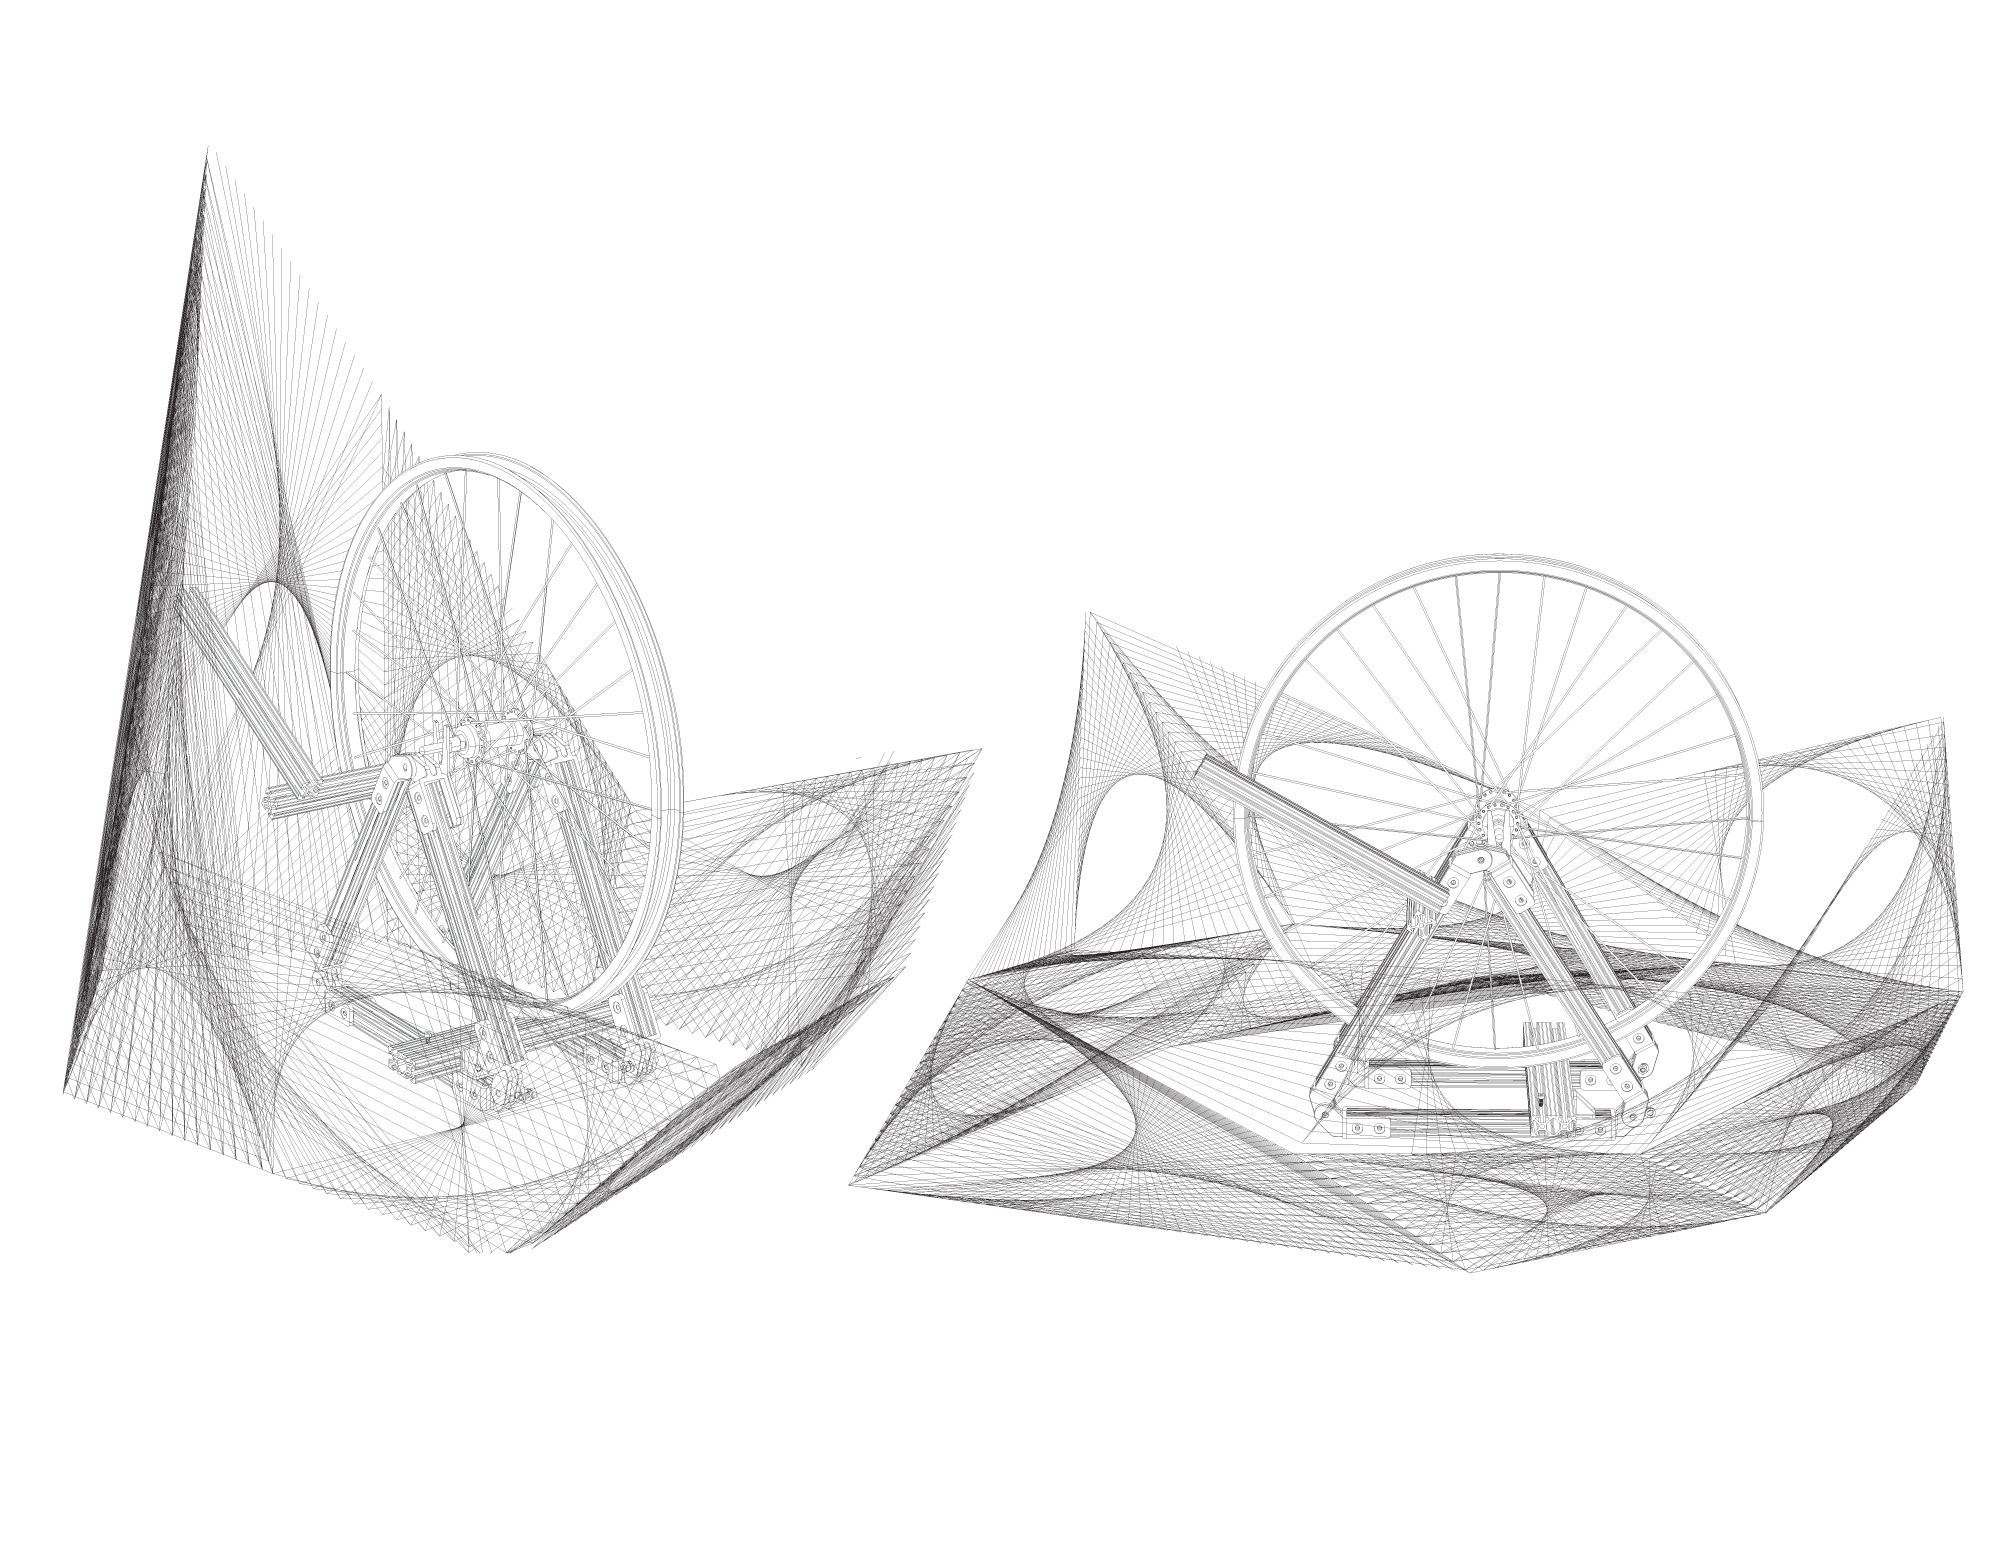 pewdrawings-of-2-iterations.png